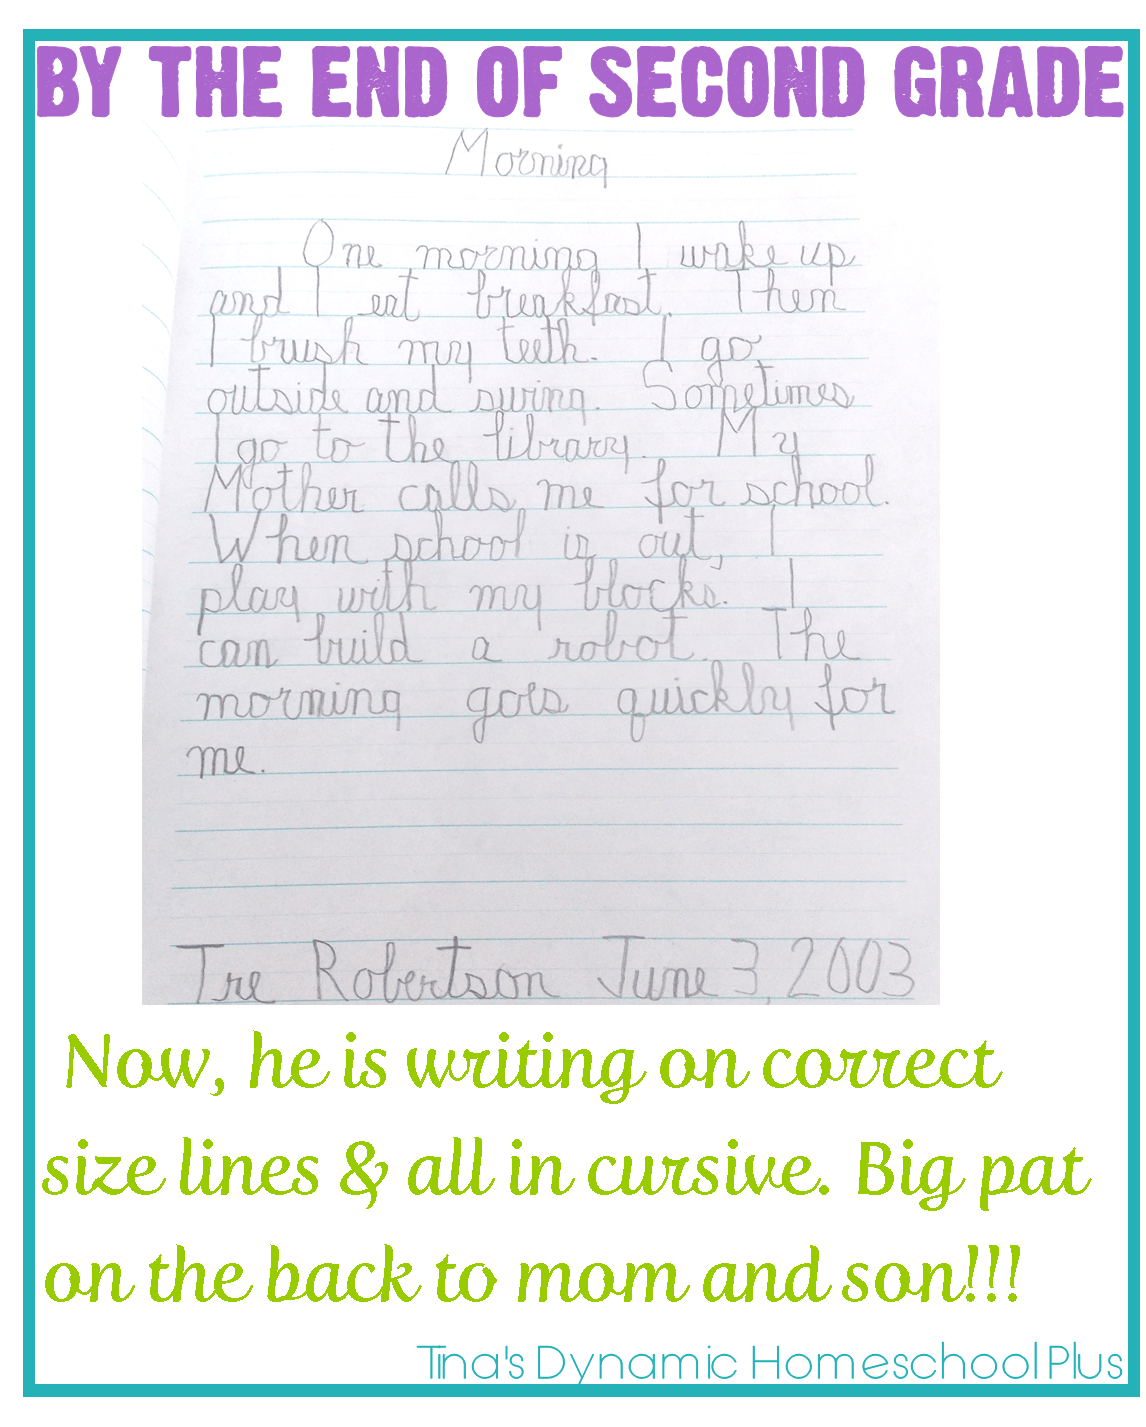 an essay on how i learned to ski As with all essays, the first step is to select the type of process you want to write about and do the research the writer must obtain full information on the process and clearly understand it in order to convey it to the target audience via an essay.